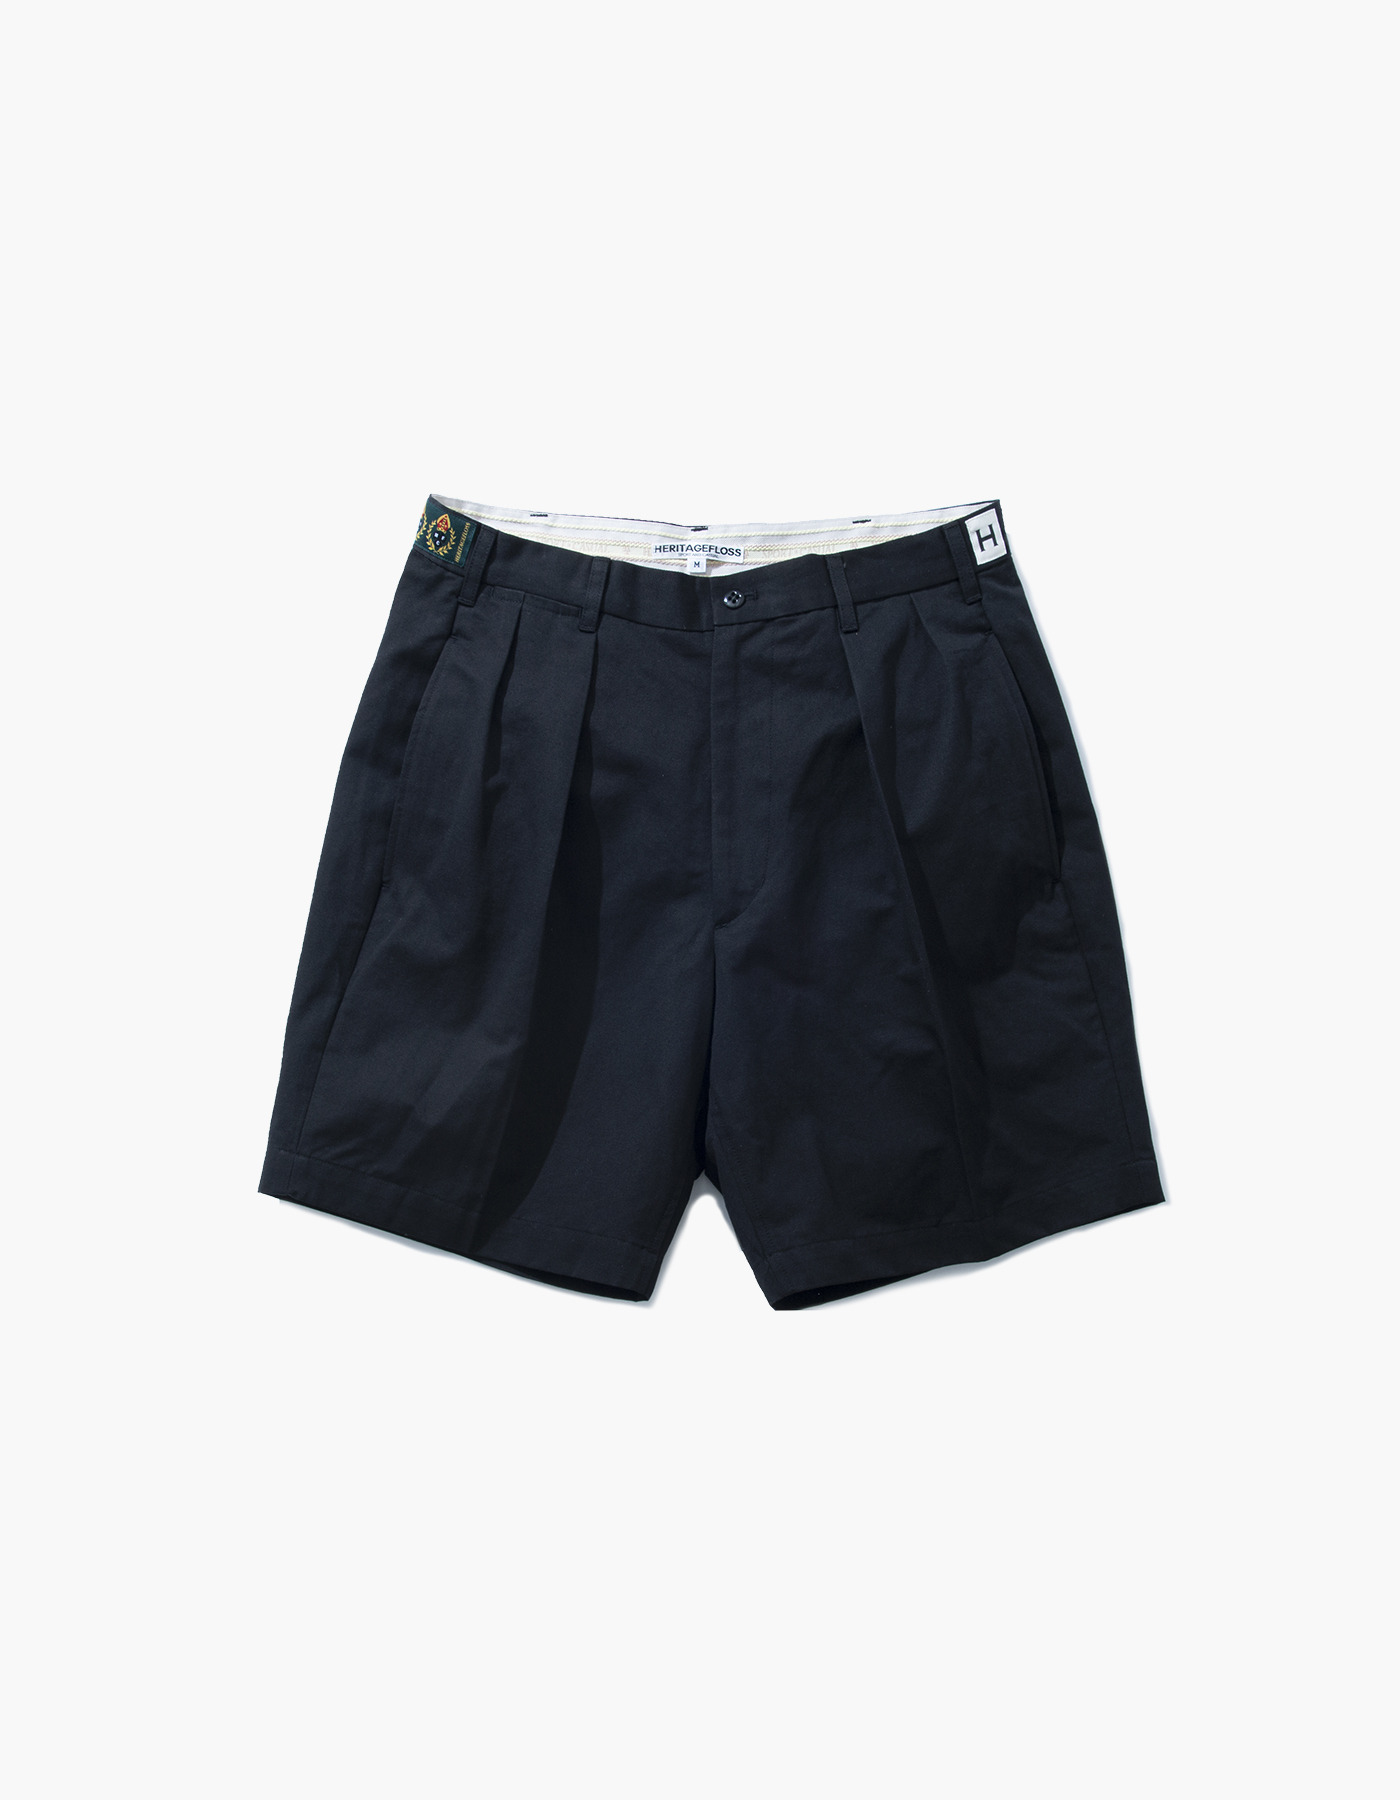 VINTAGE WASHER LINEN CHINO SHORTS / BLACK